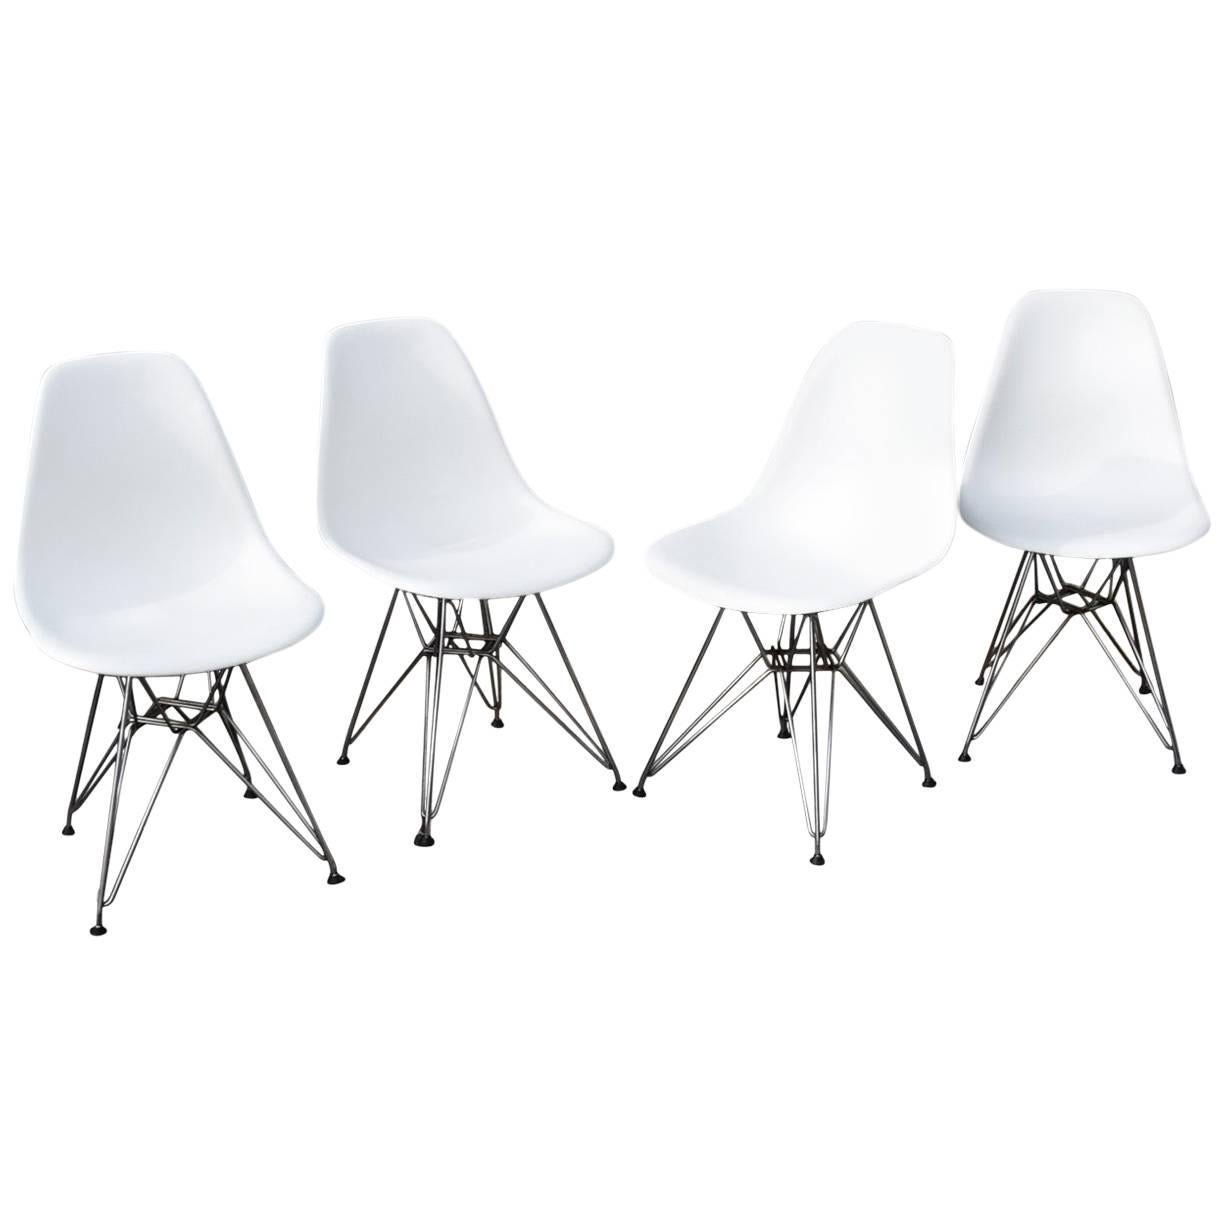 Eames Eiffel Eames Shell Chairs With Chrome Eiffel Tower Bases Midcentury